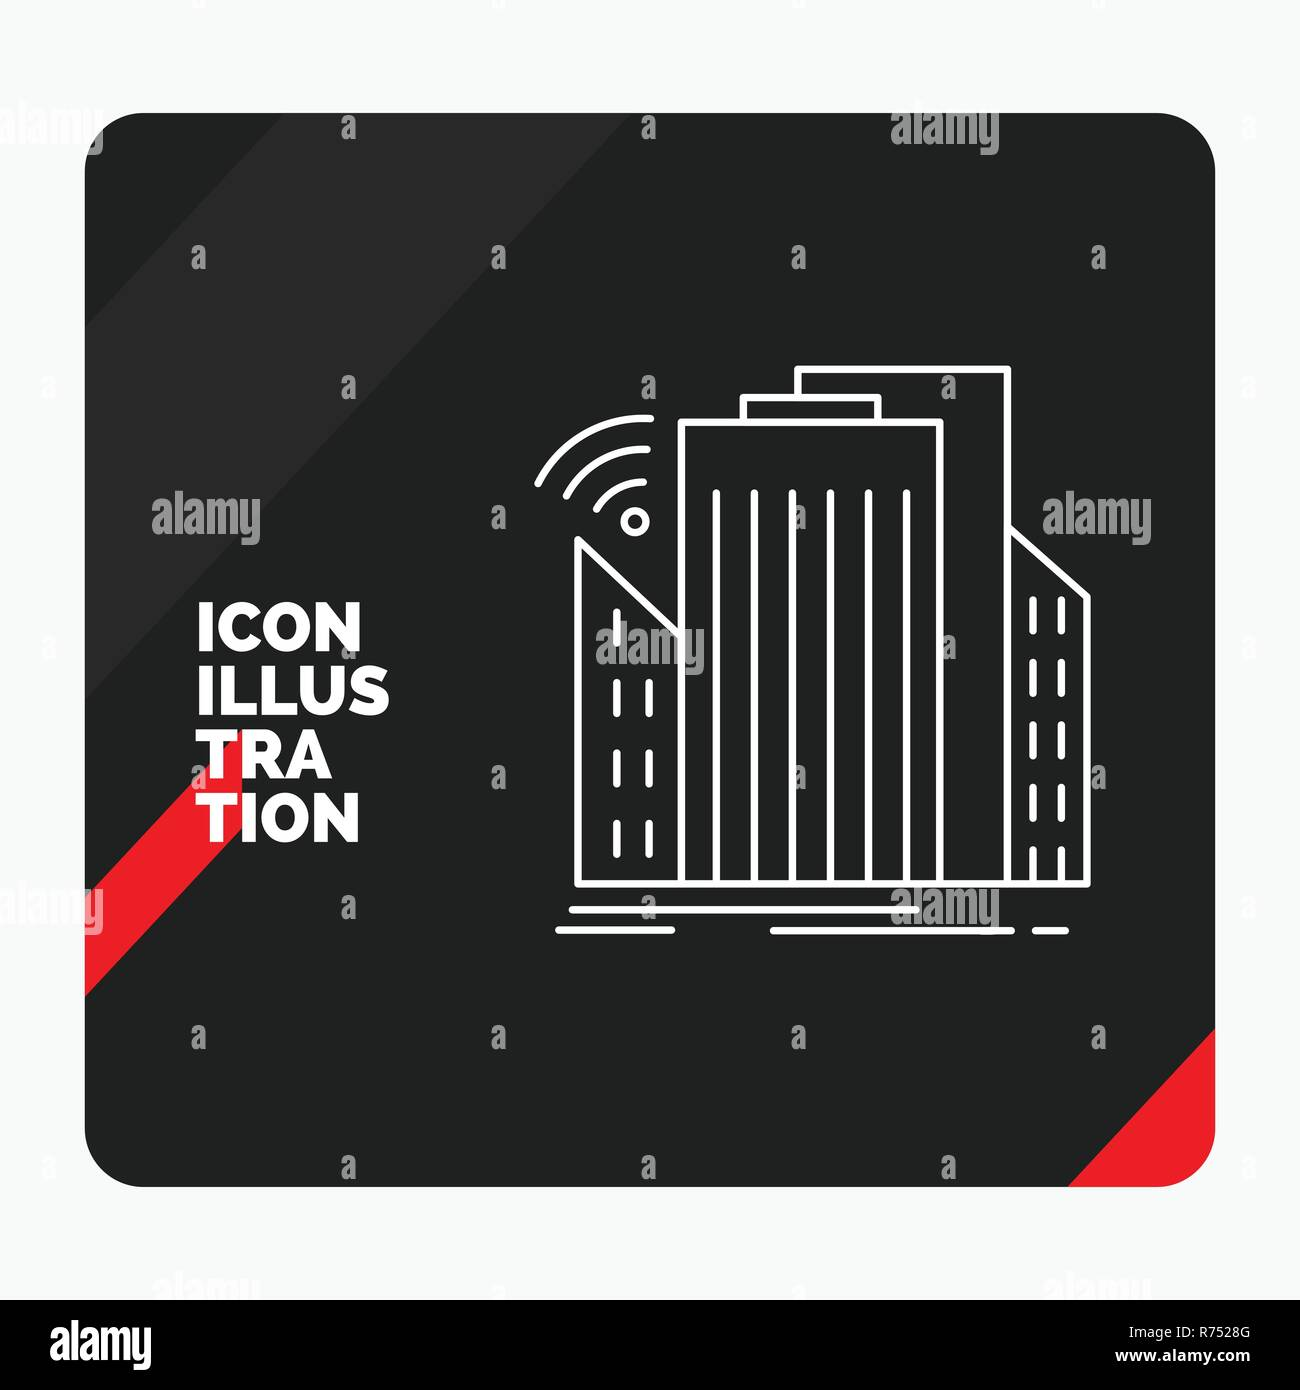 Red and Black Creative presentation Background for Buildings, city, sensor, smart, urban Line Icon - Stock Vector